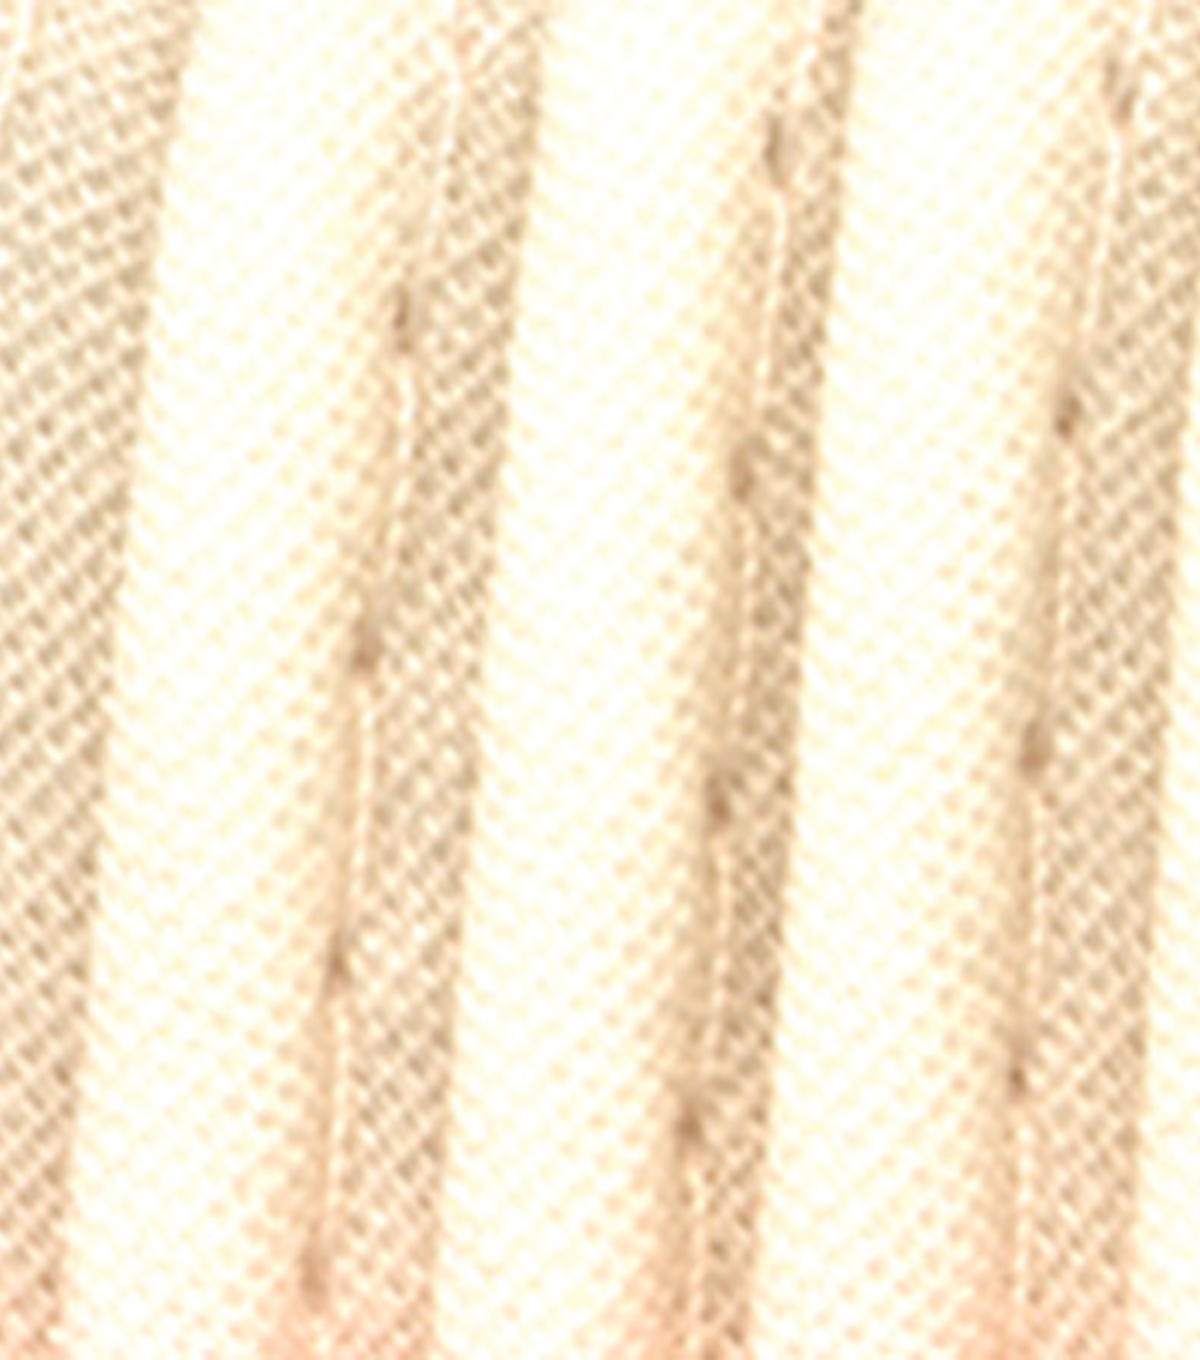 Wrights Maxi Piping 1/2\u0022 2-1/2 Yards, Oyster